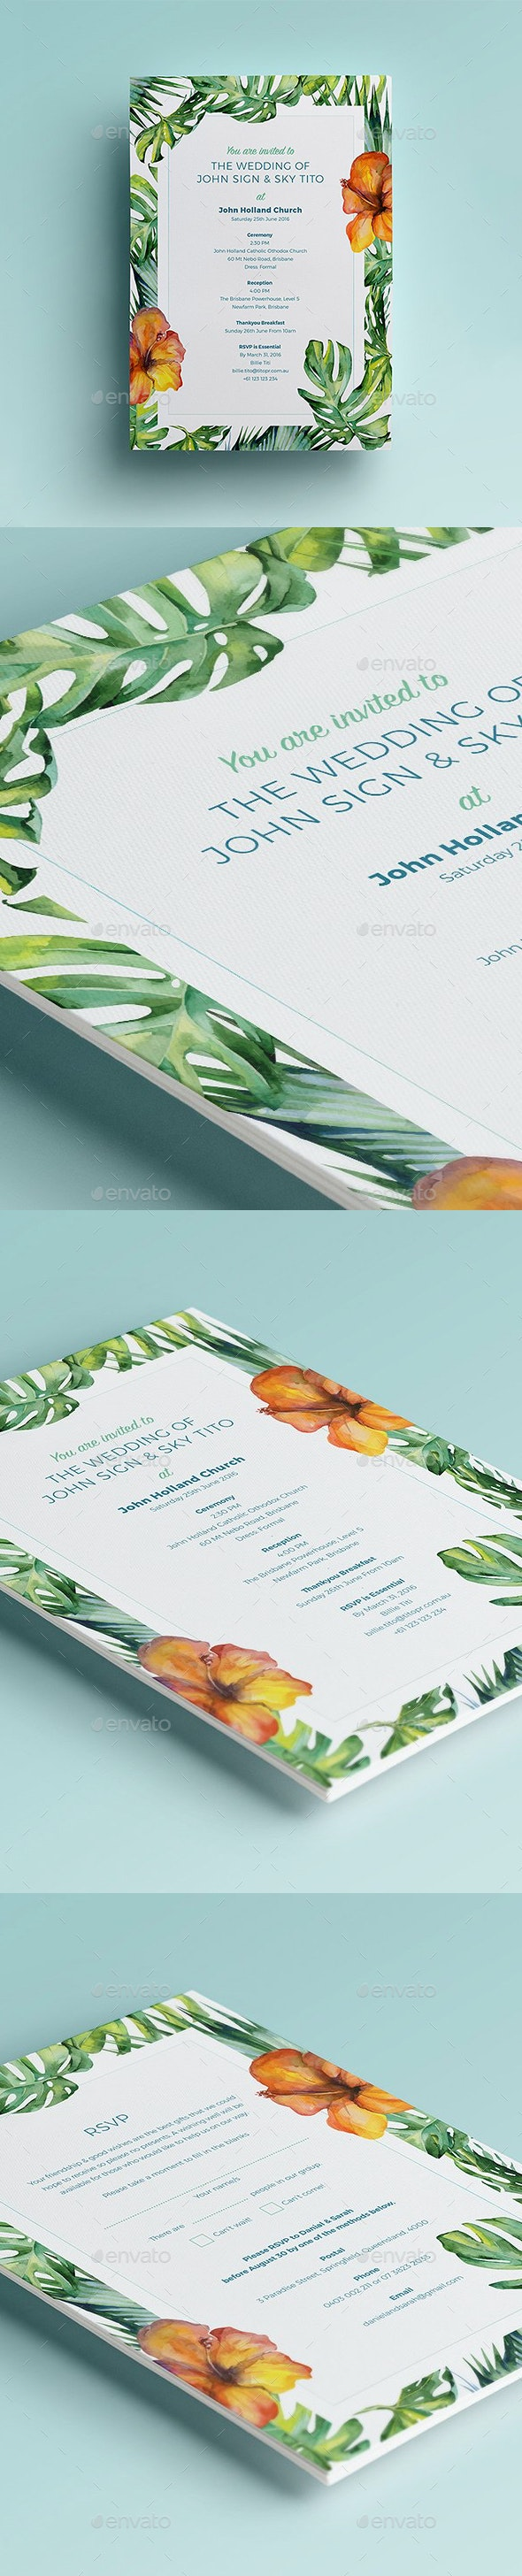 Wedding Invite - Weddings Cards & Invites